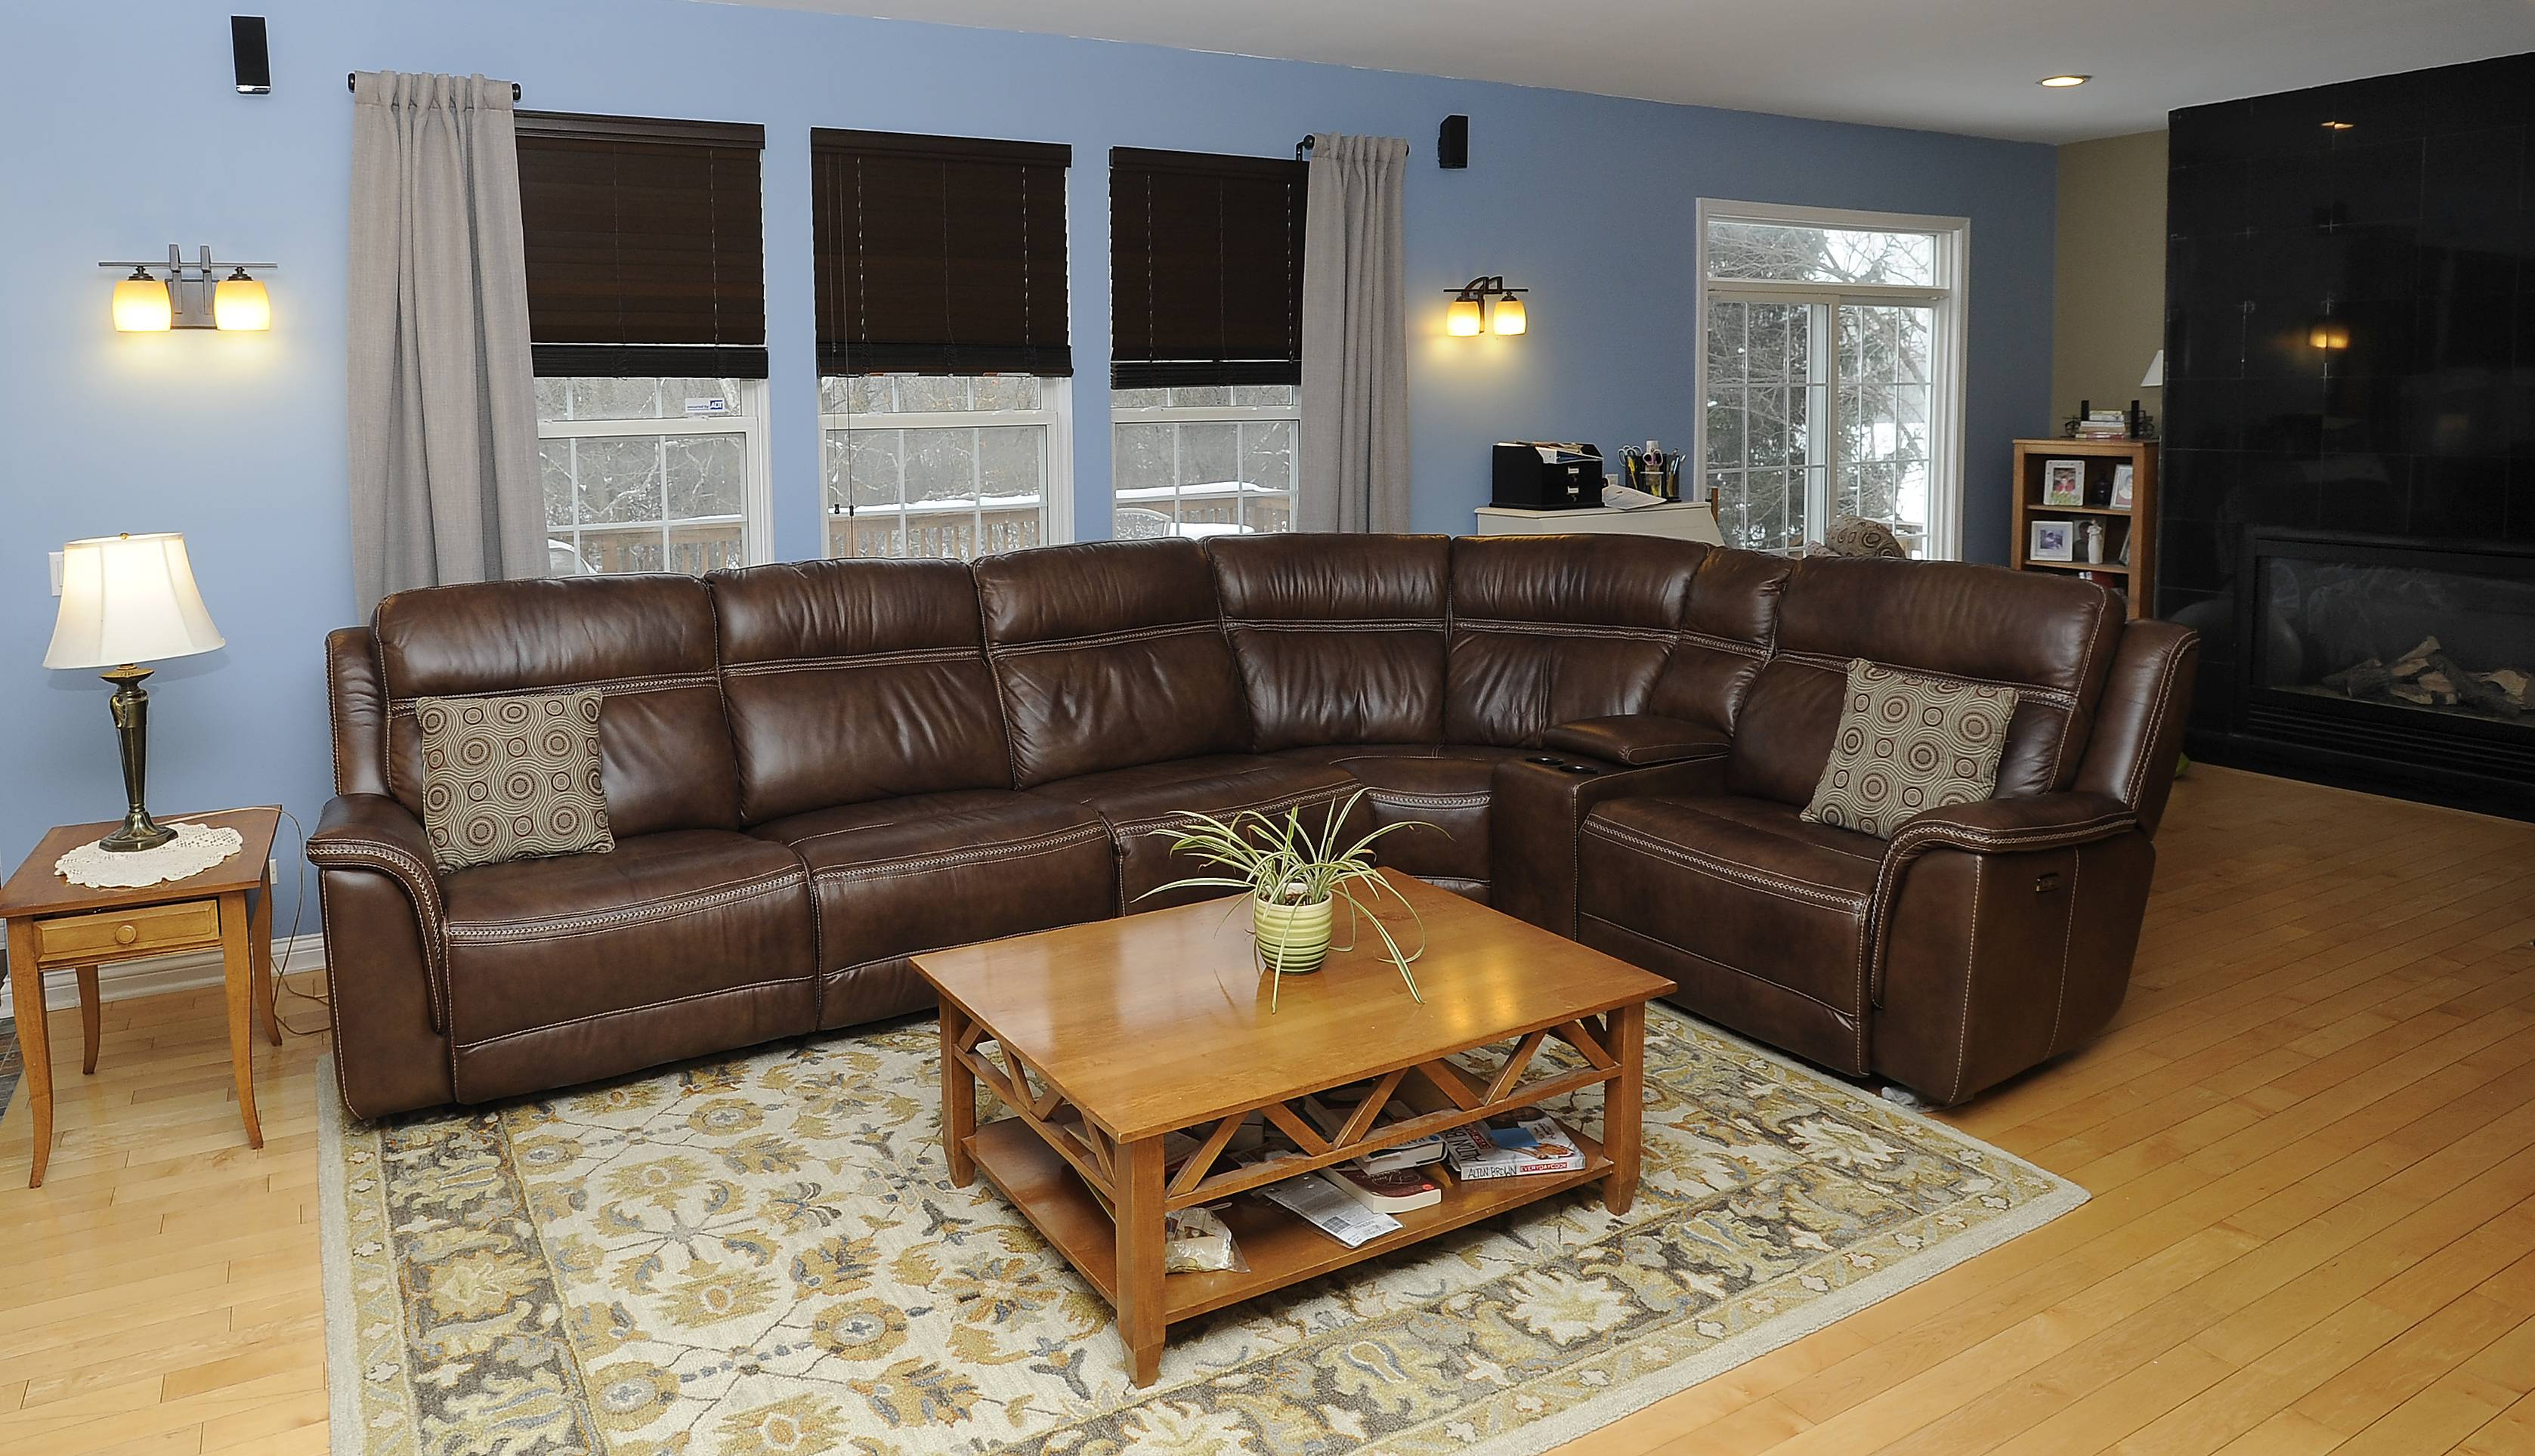 Claudia and Michael Fisher of Mundelein won a living room makeover that included a new couch and drapes for the family's living area.